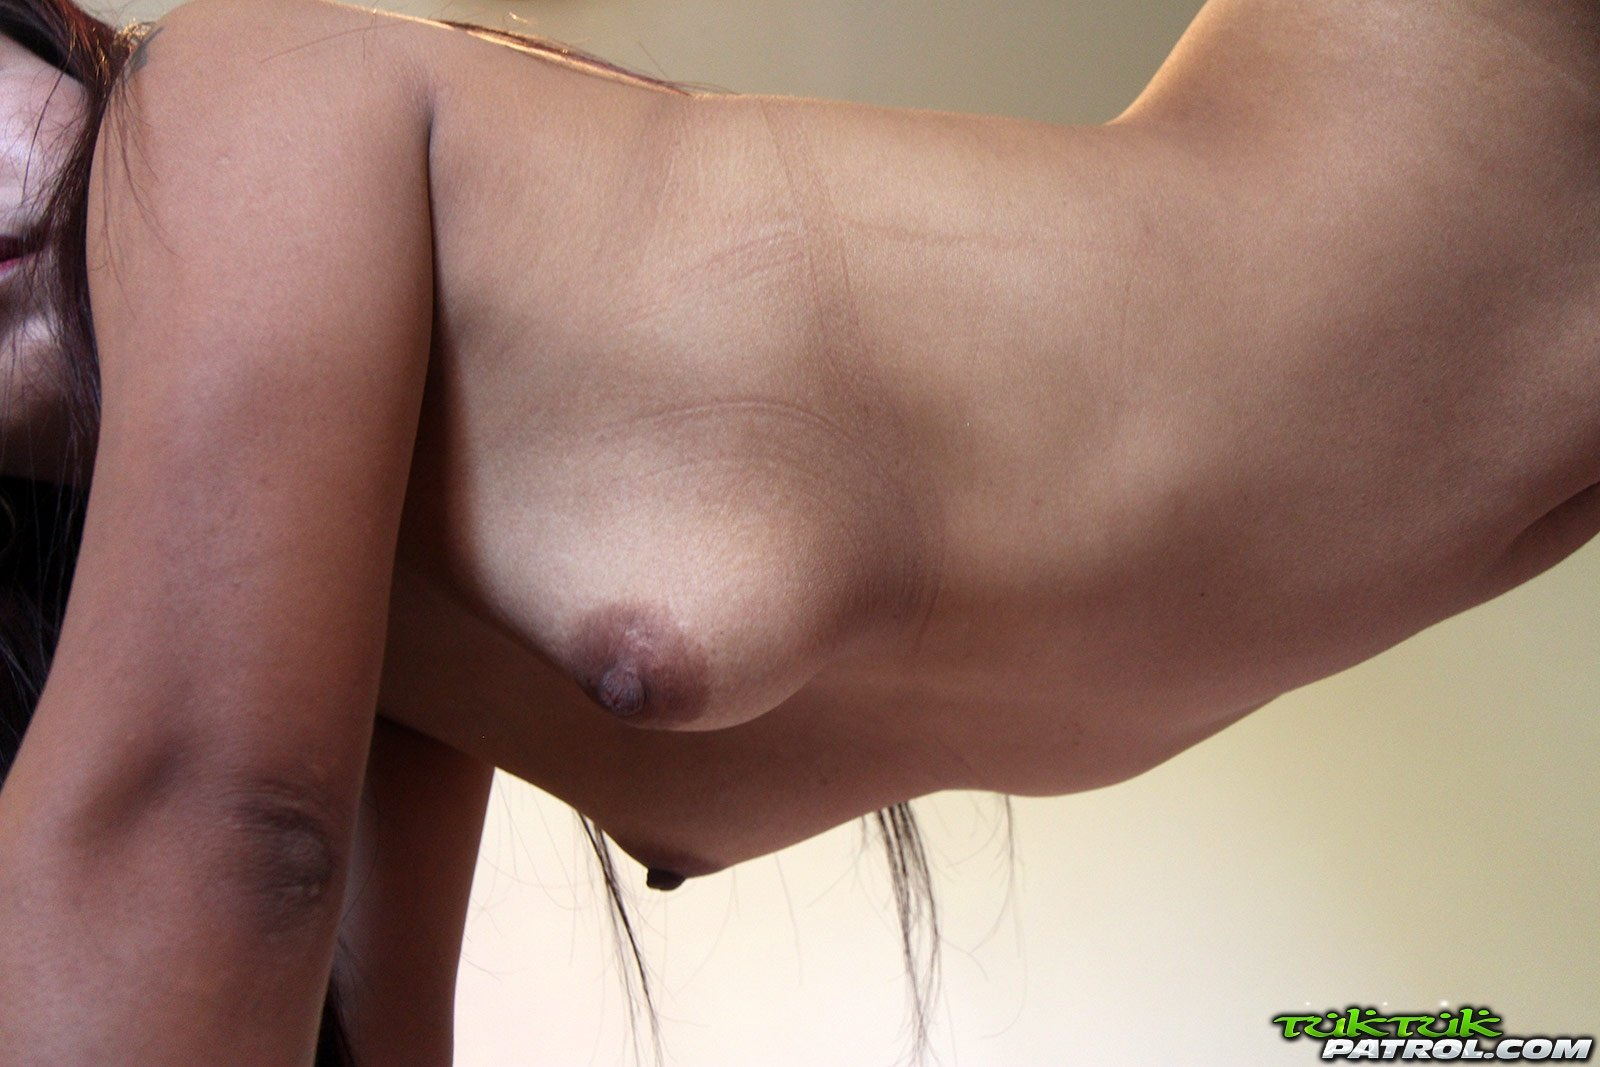 free german porn milf amatuer spanking videos